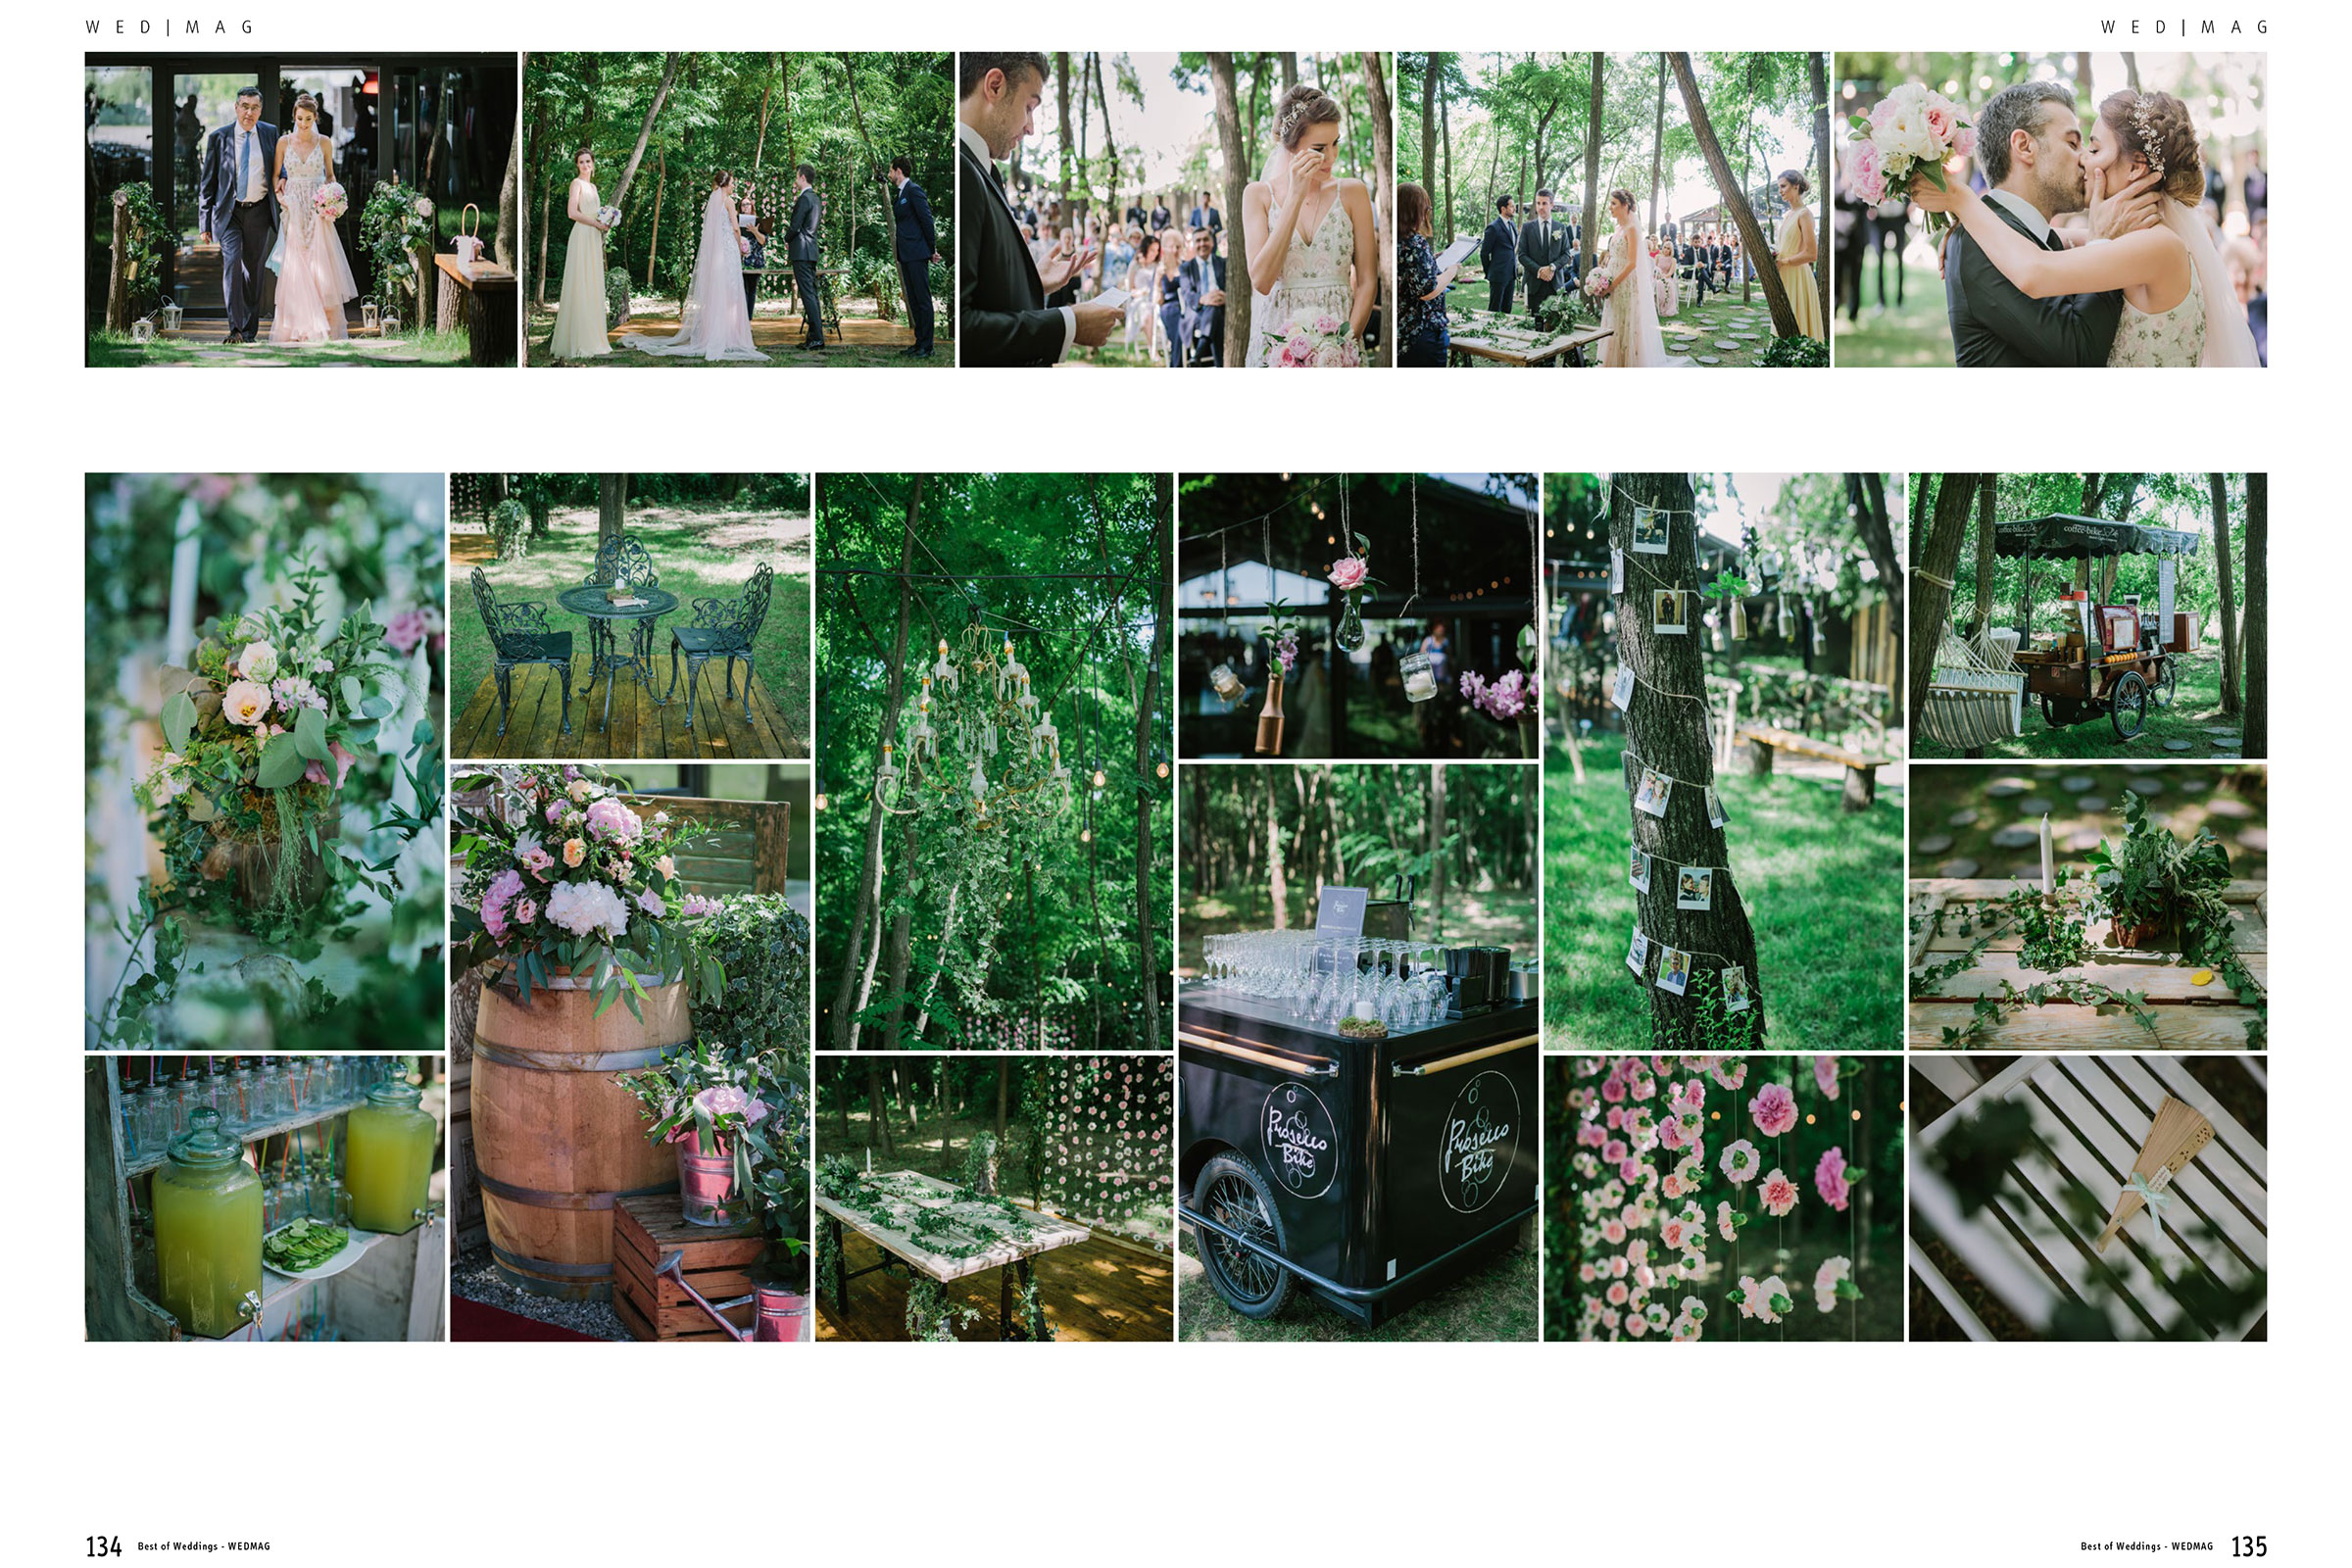 cromatica in best of weddings 2018 09